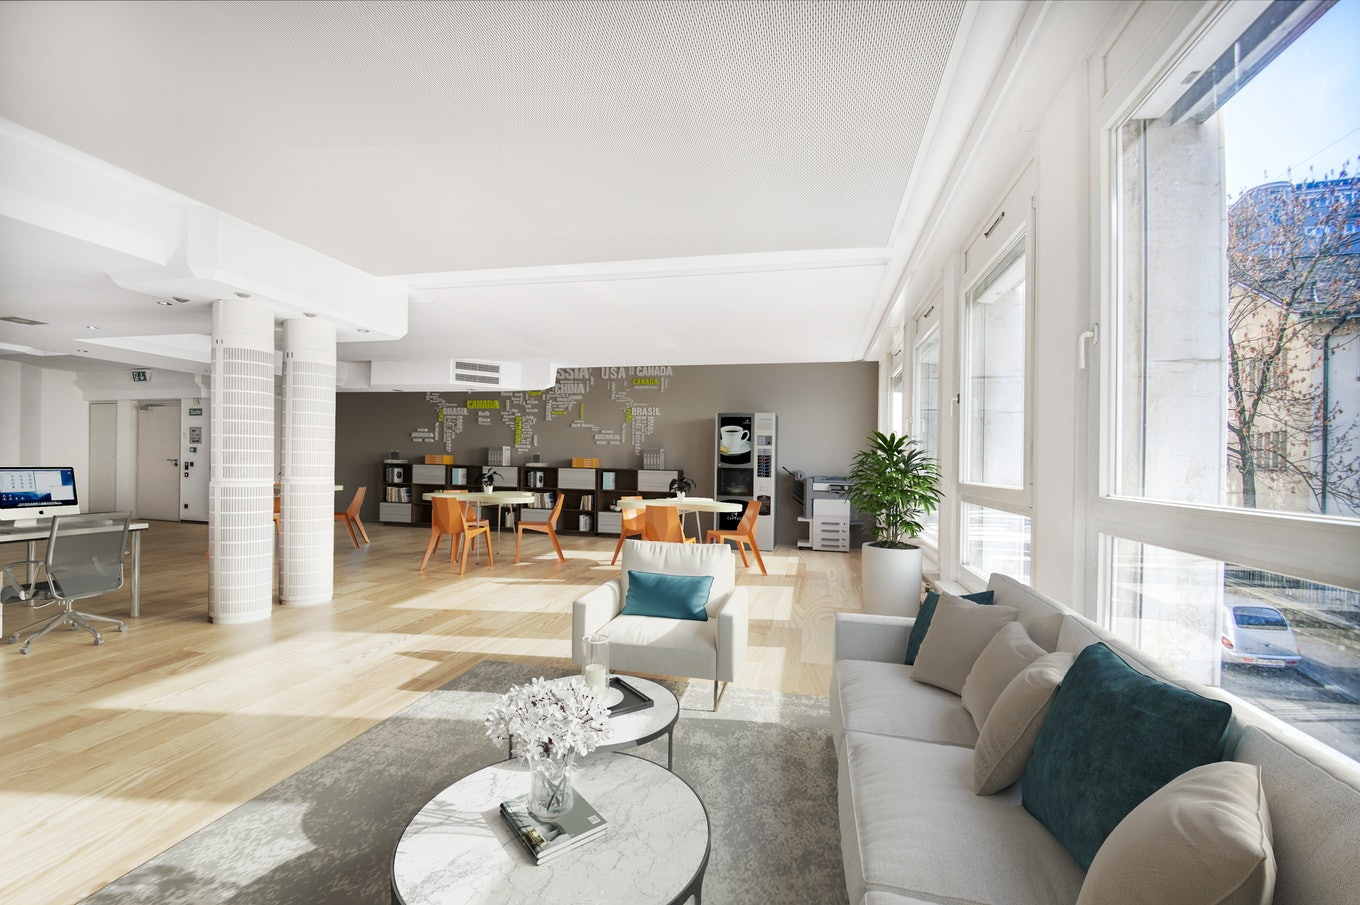 3D staging interior office with sofa